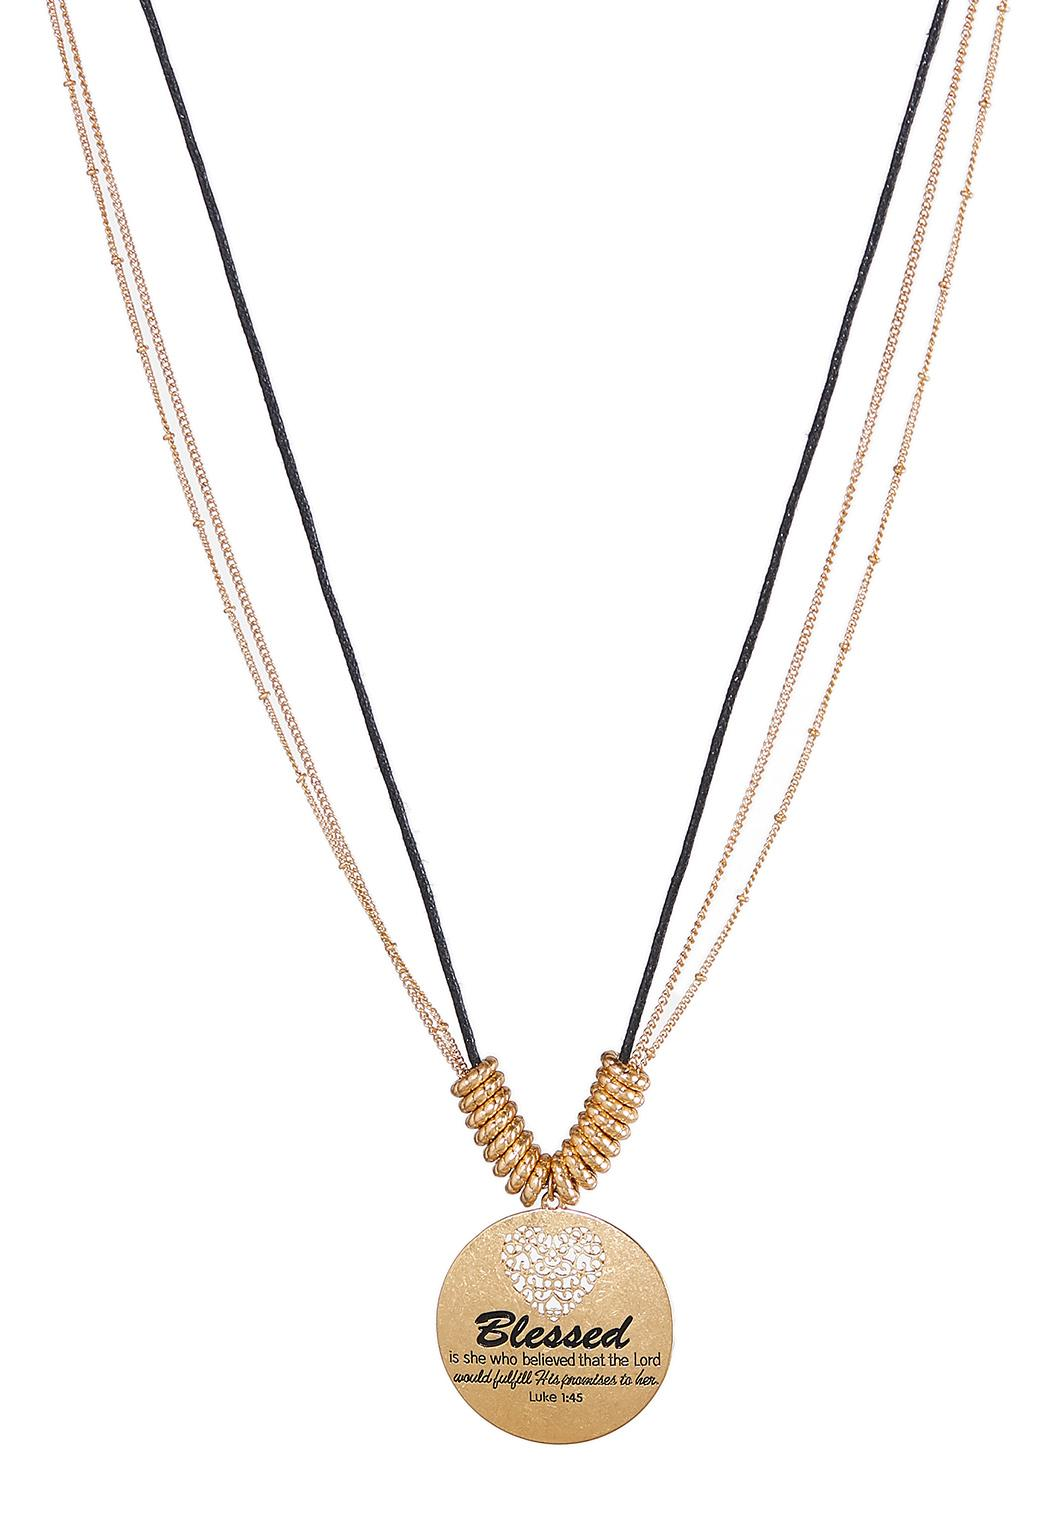 Inspirational Engraved Disc Pendant Necklace